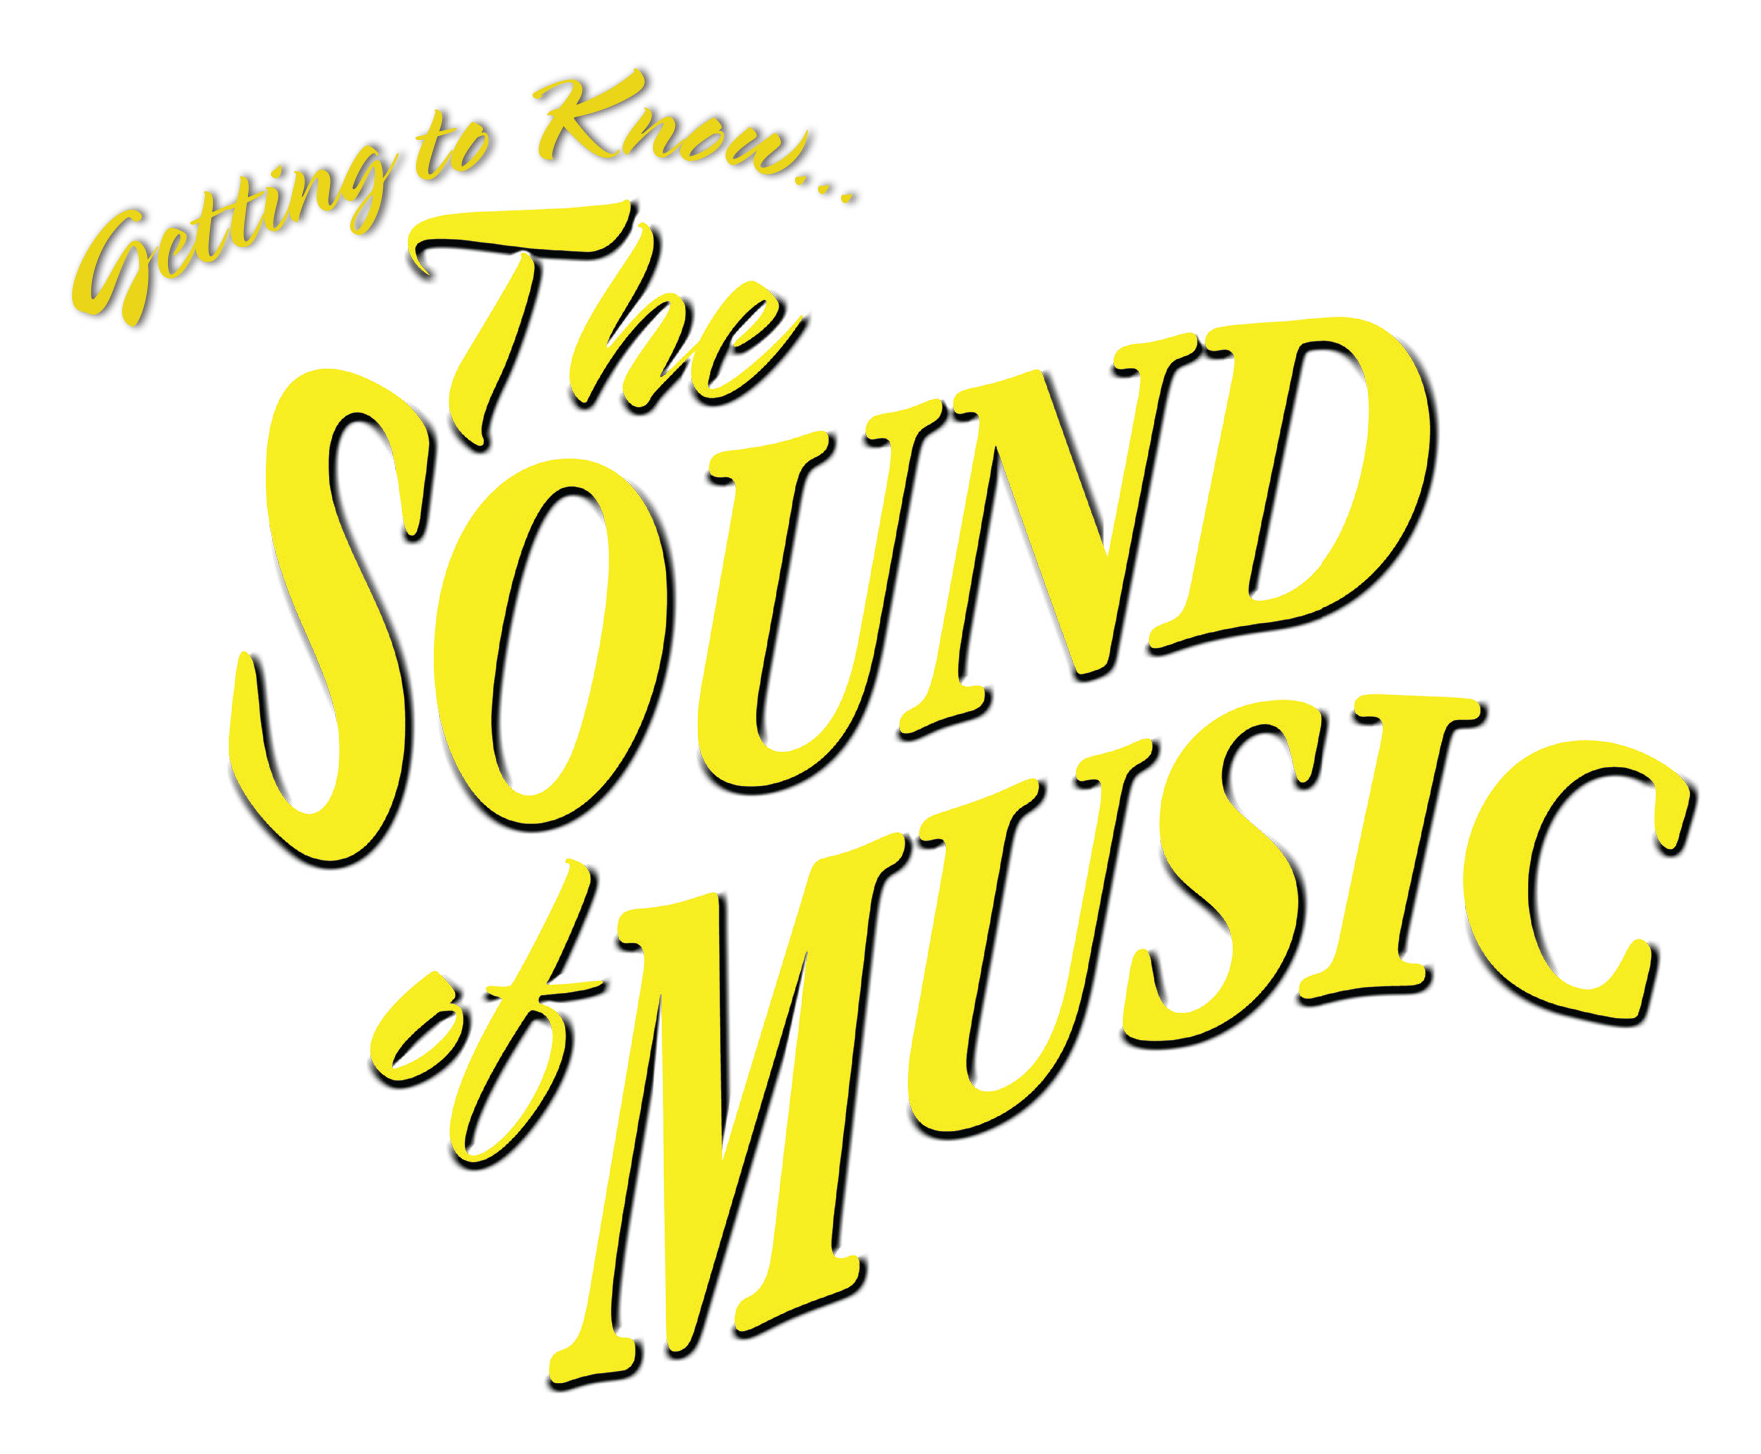 getting to know the sound of music logo